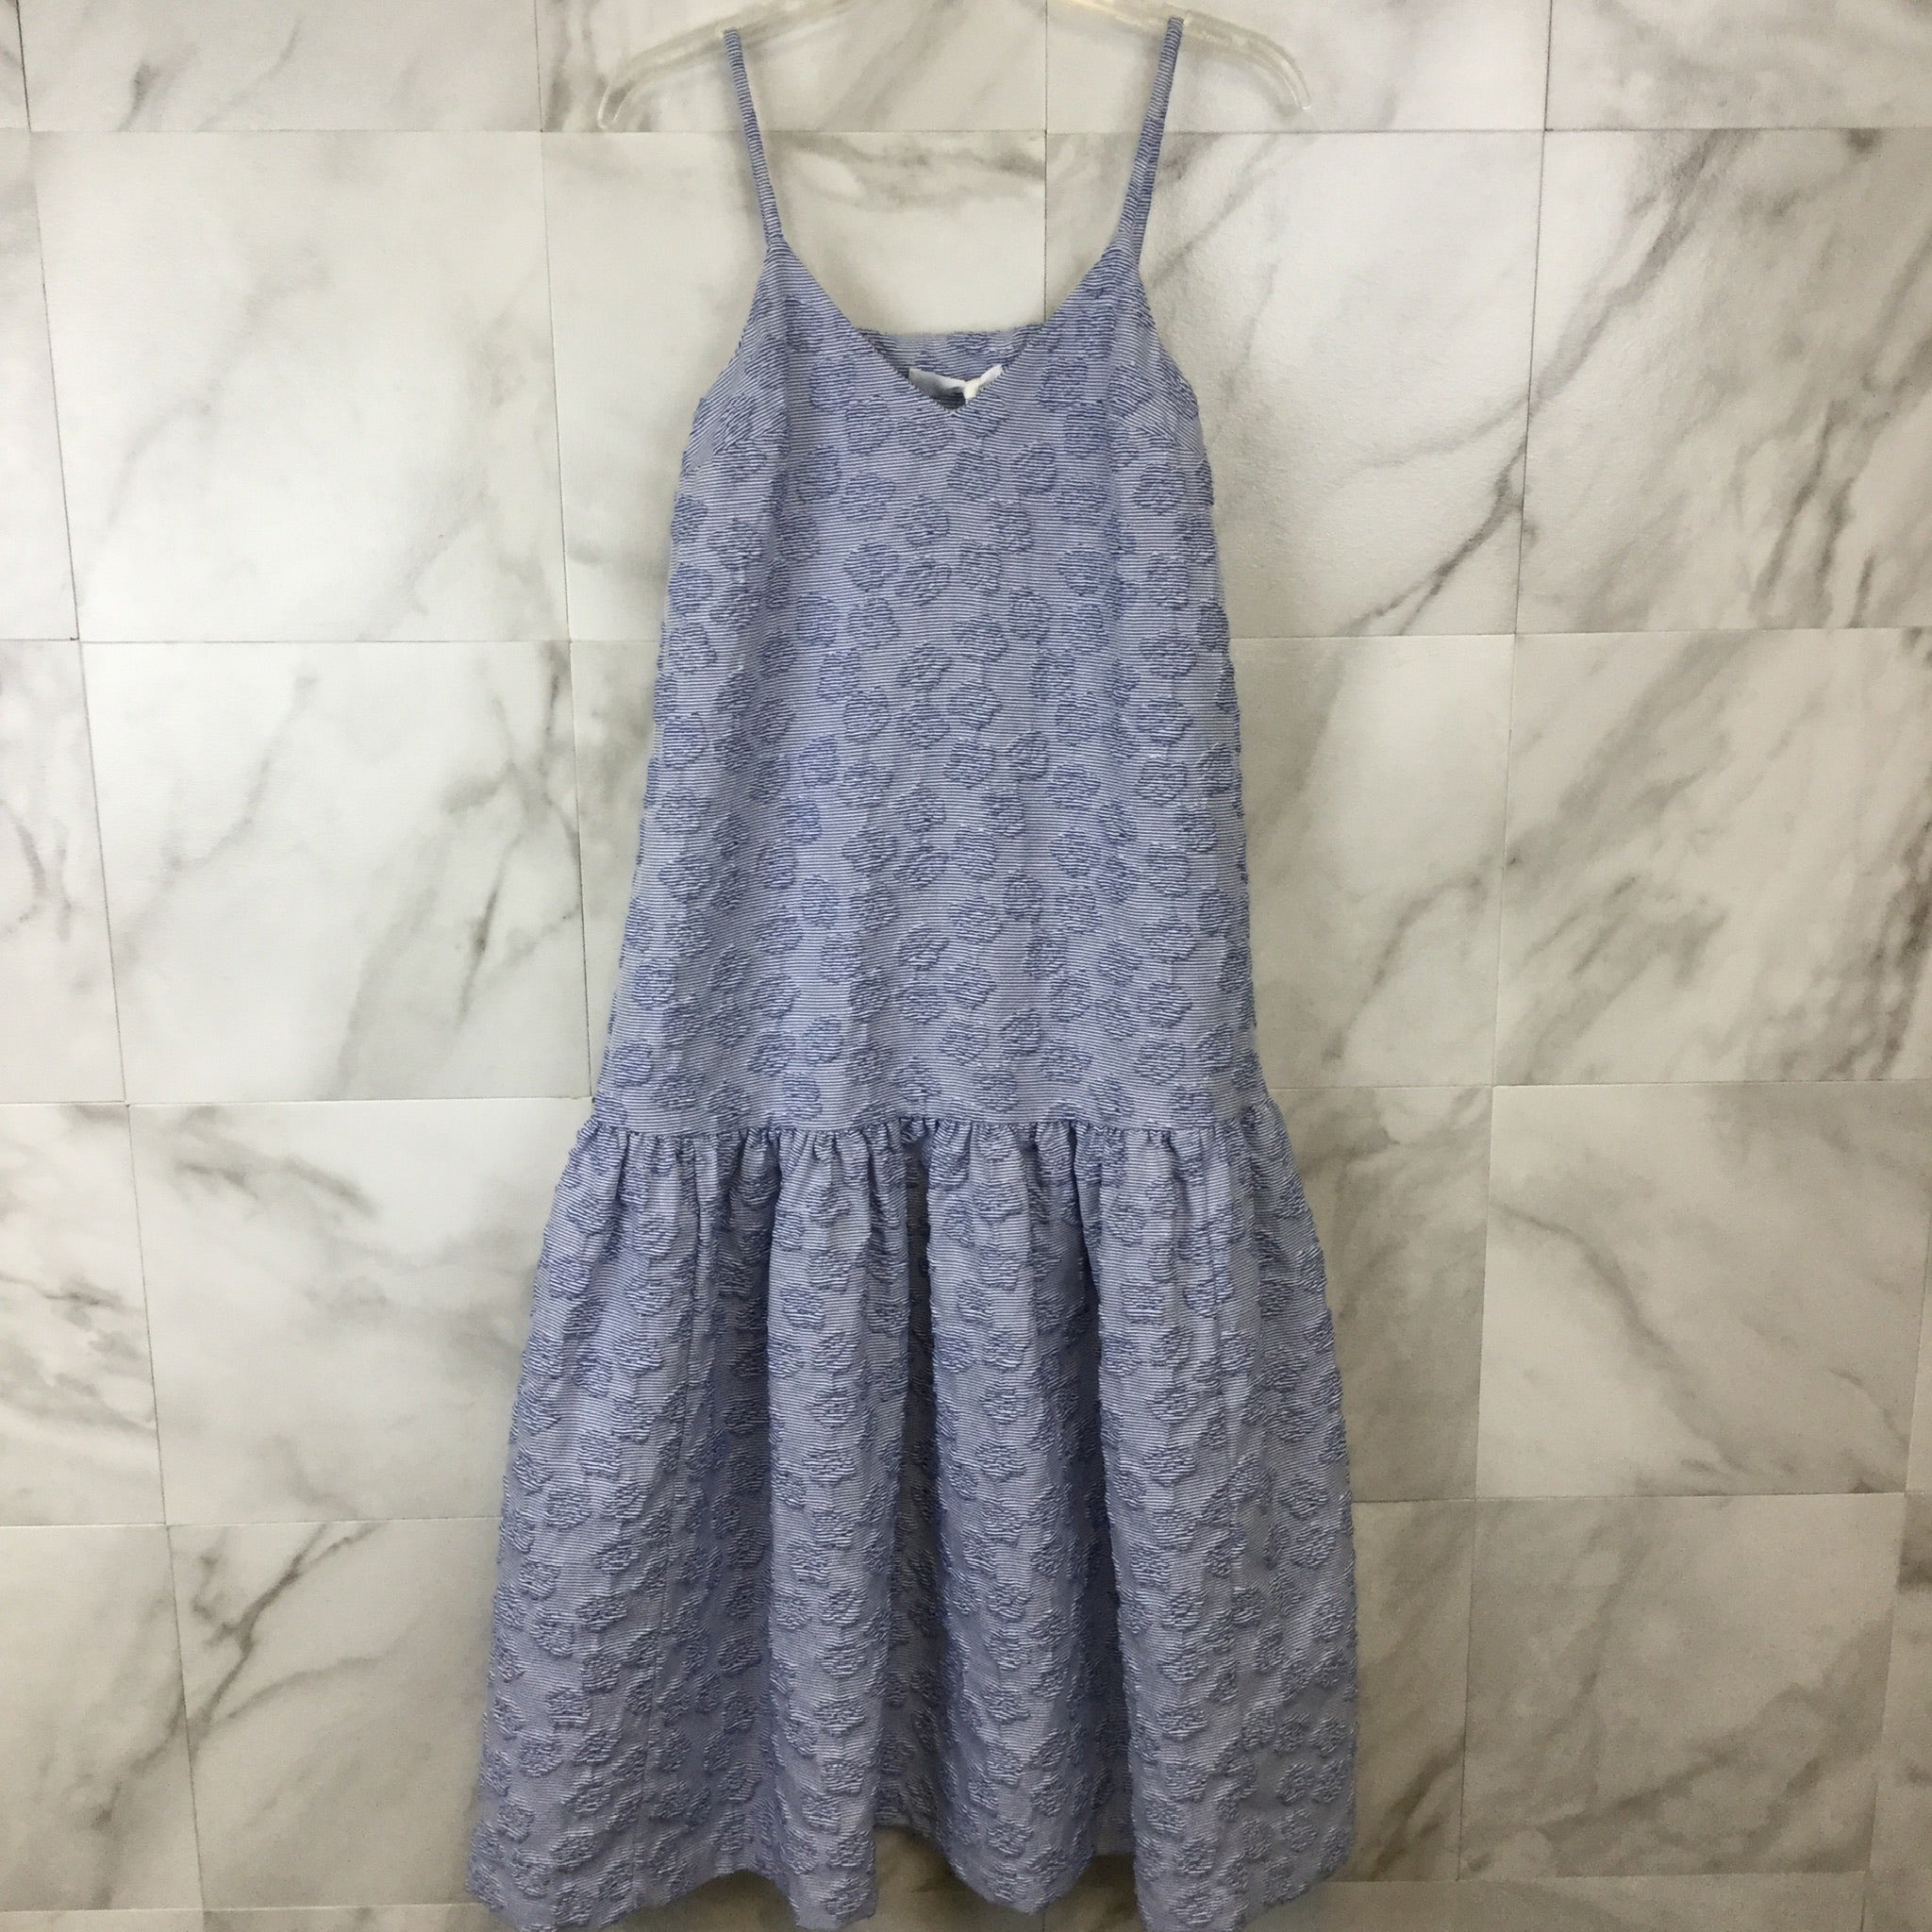 Co. Seersucker Drop Waist Dress - size XS